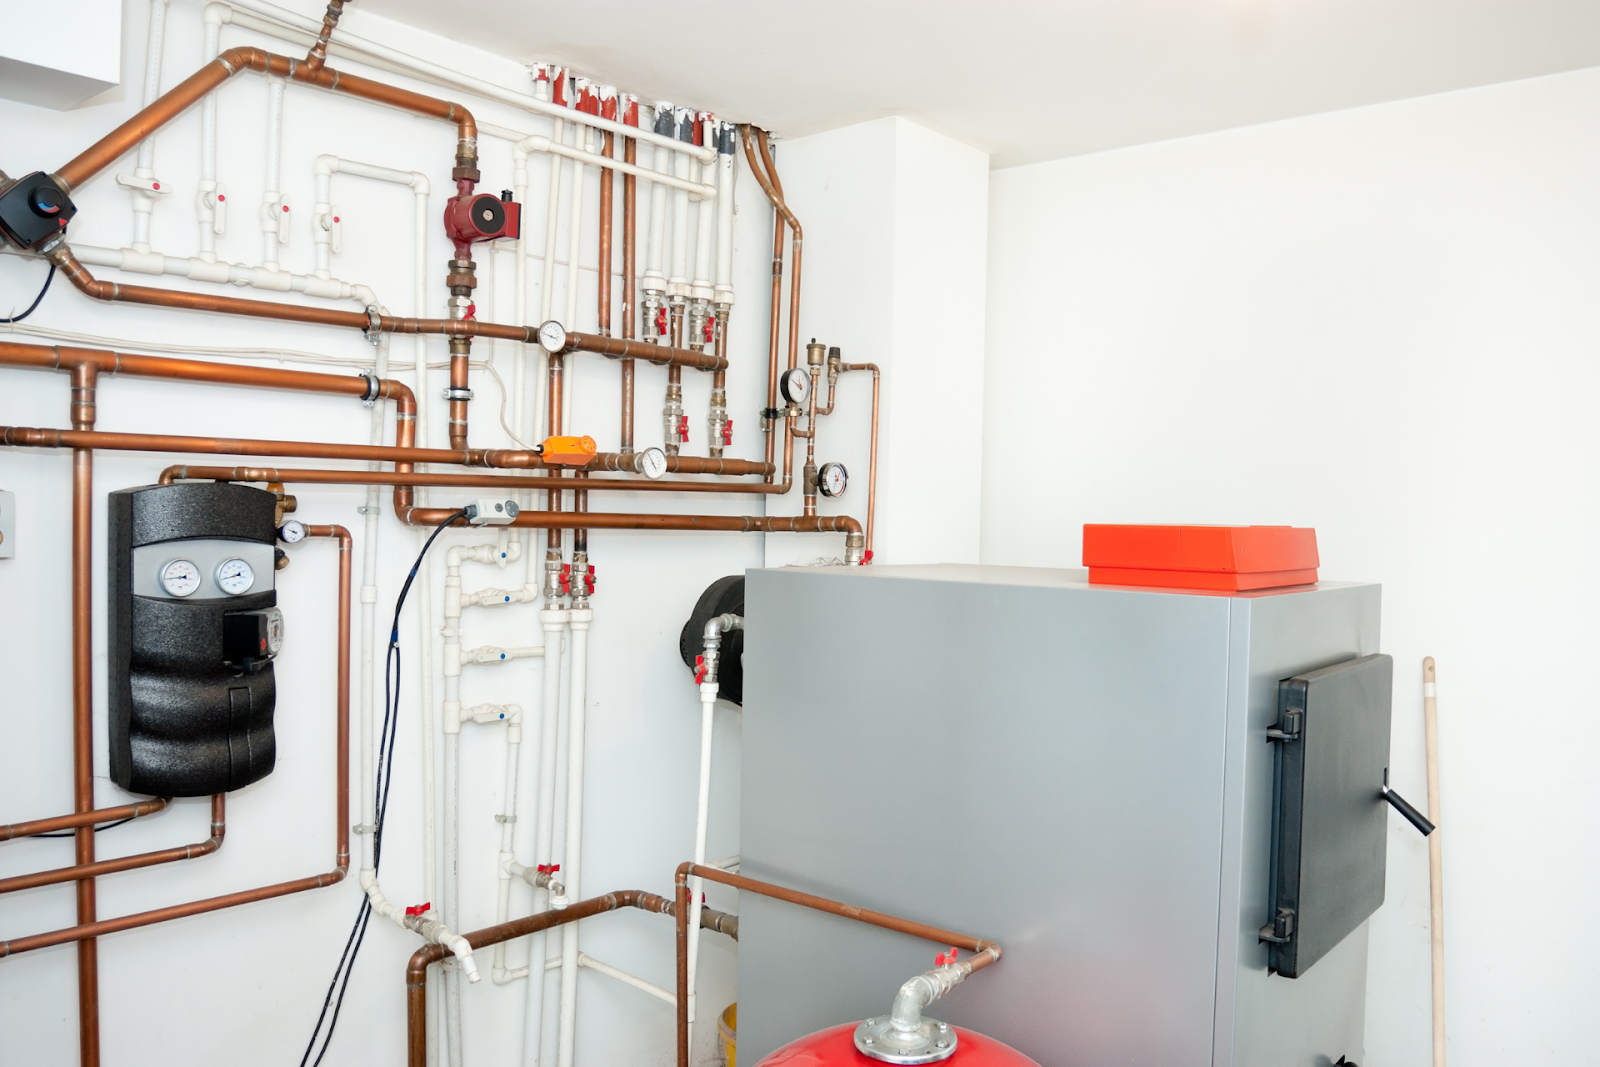 Top 5 Benefits of Investing in Monthly HVAC System Maintenance Checks